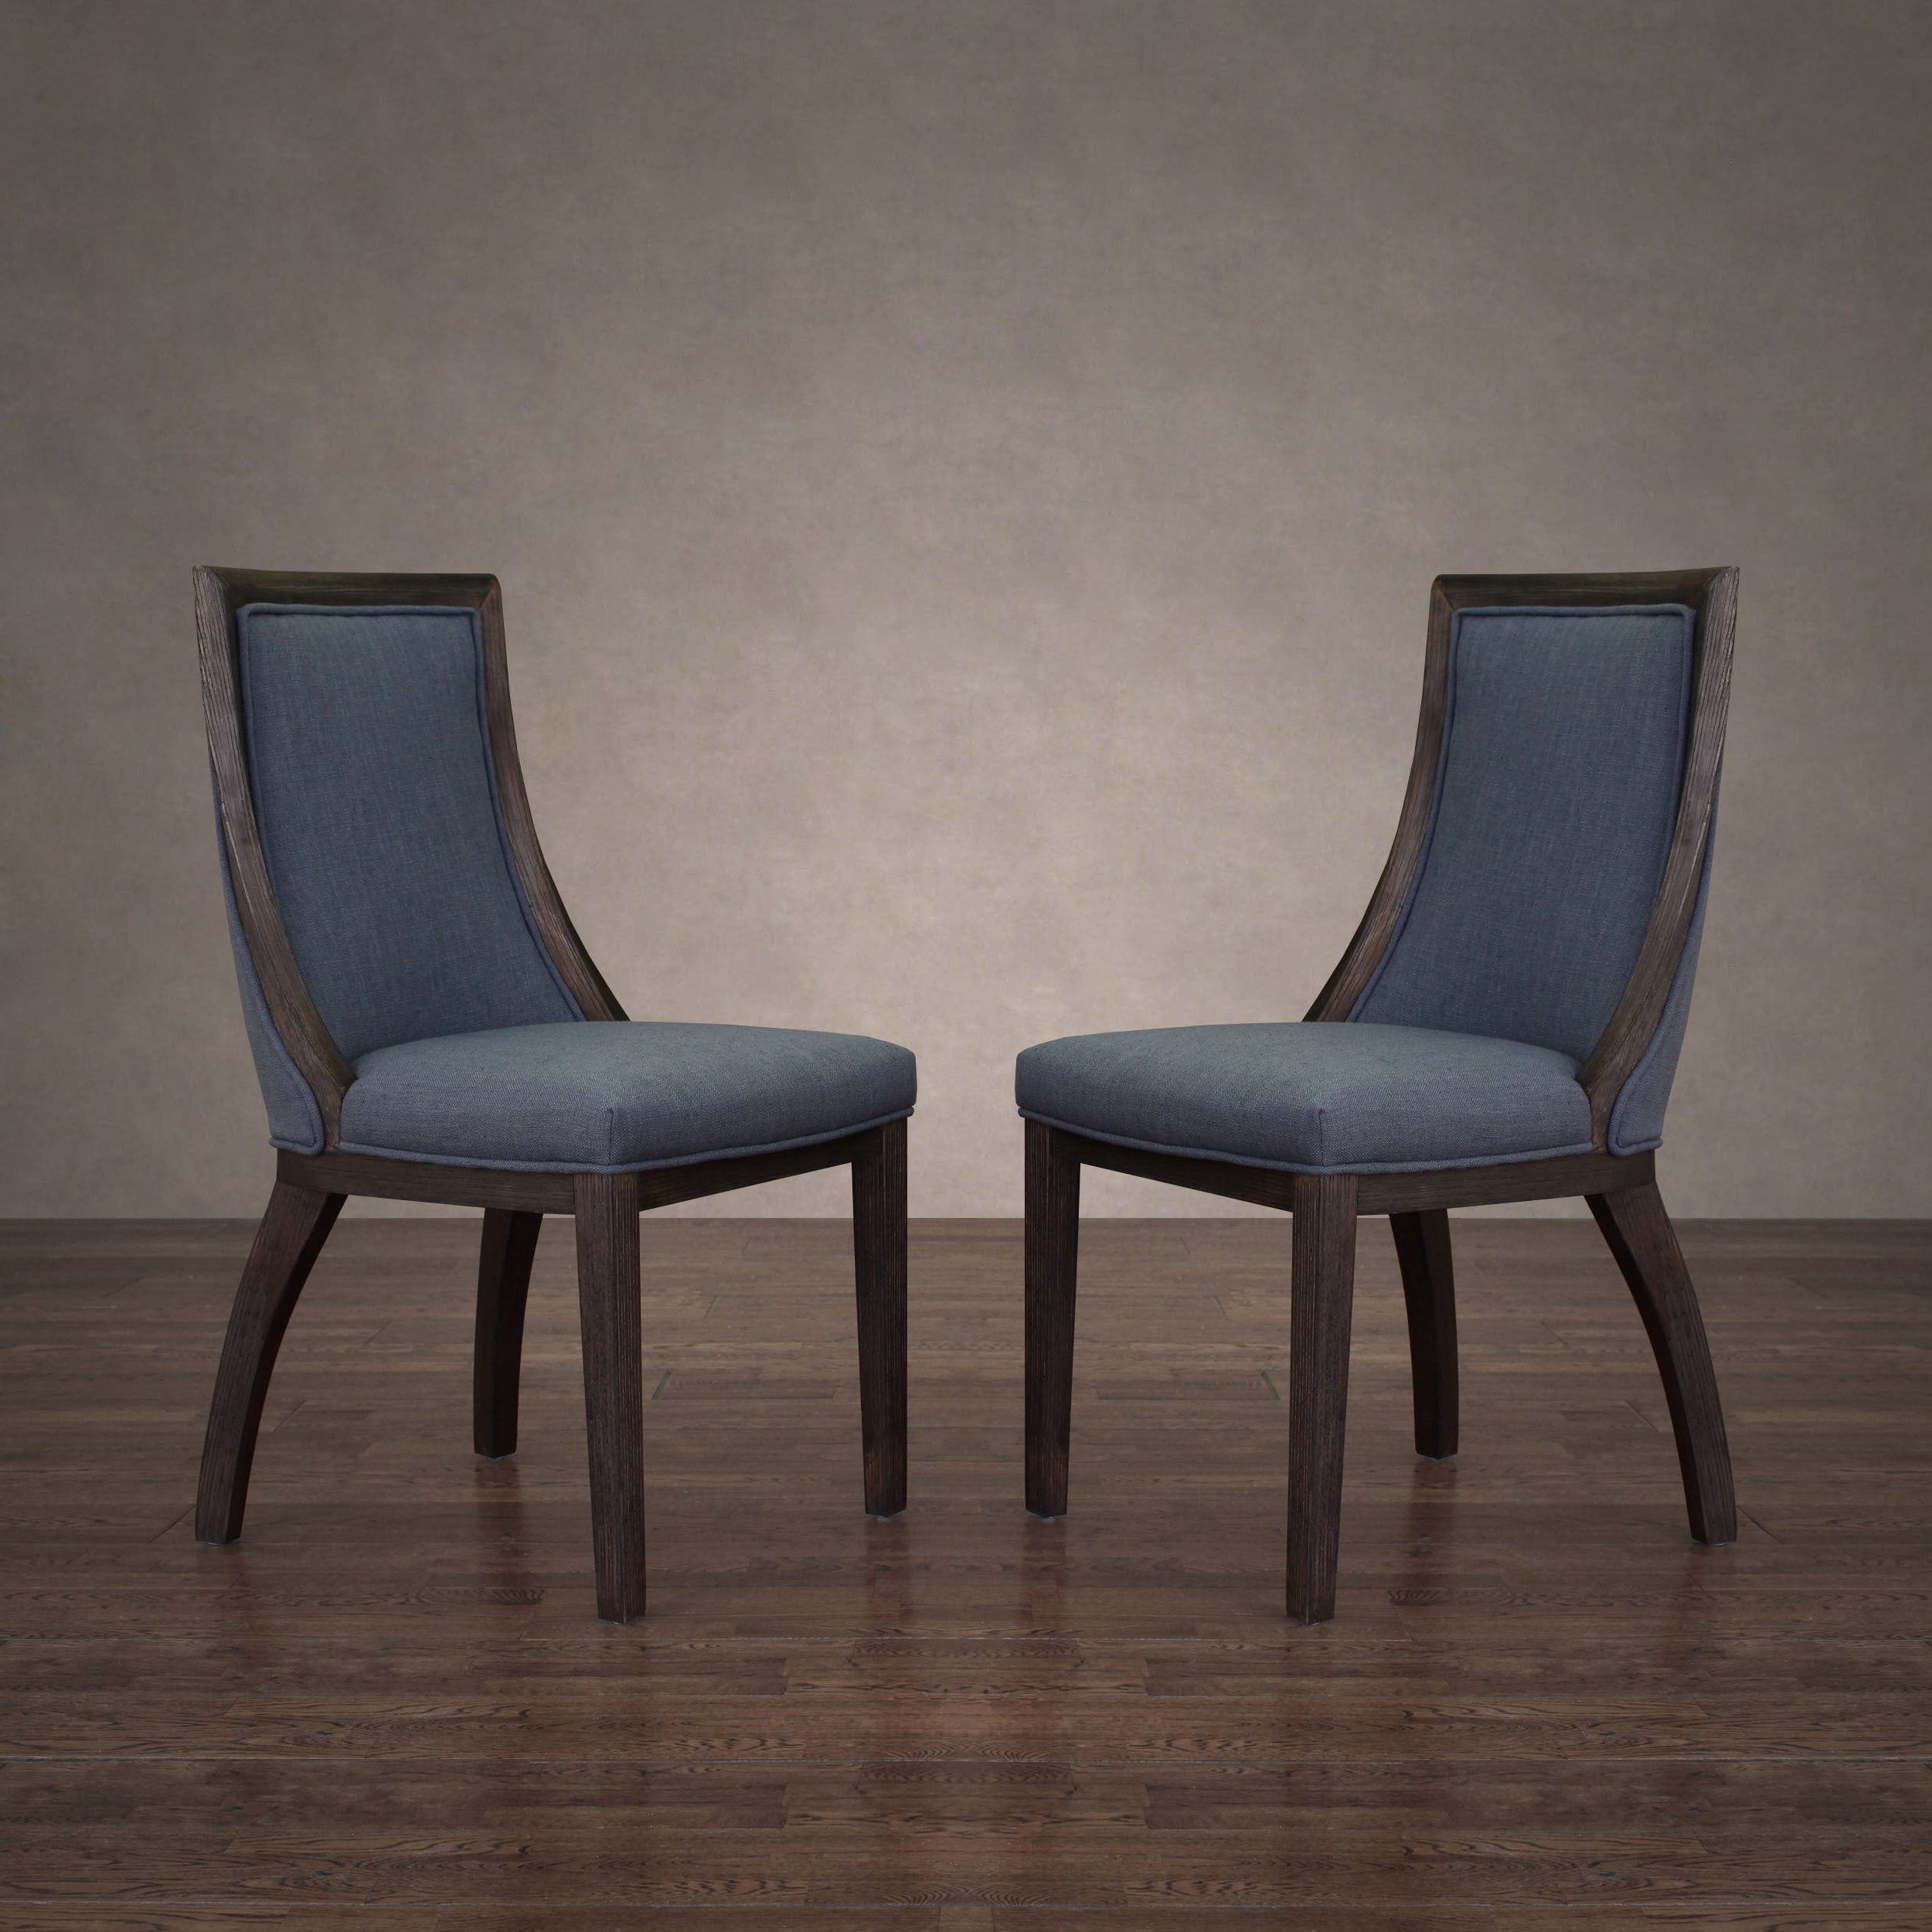 Fashionable Madison Avenue Tufted Cotton Upholstered Dining Chairs (set Of 2) Within The Gray Barn Park Avenue Austria Navy Linen Dining Chair (set Of 2) (View 7 of 20)